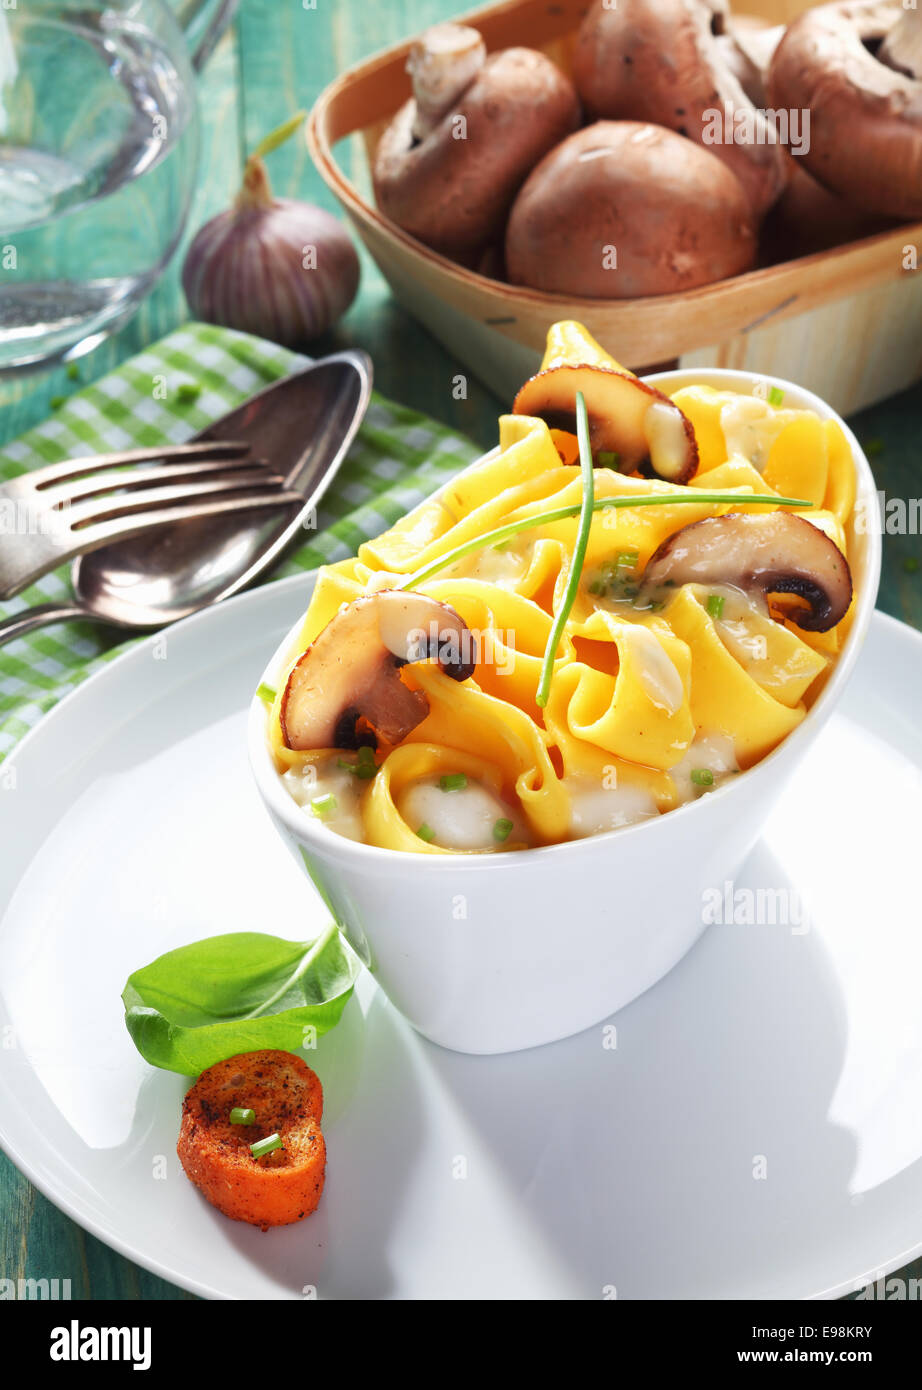 Boat-shaped dish of mushroom tagliatelle with a bowl of fresh mushrooms in the background. - Stock Image